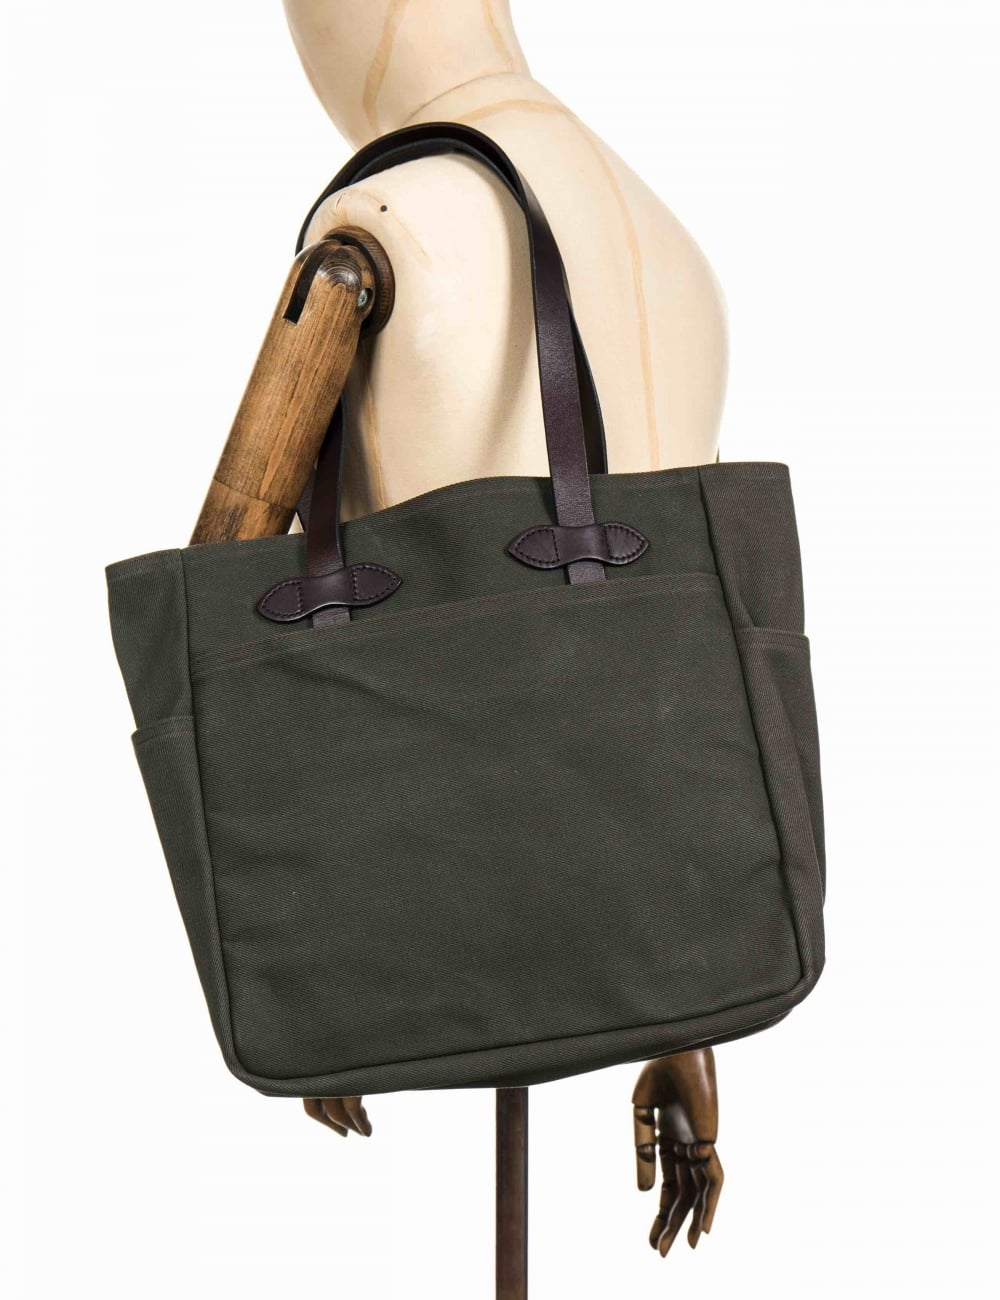 cd1a3feb6f8 Tote Bag Without Zipper - Otter Green